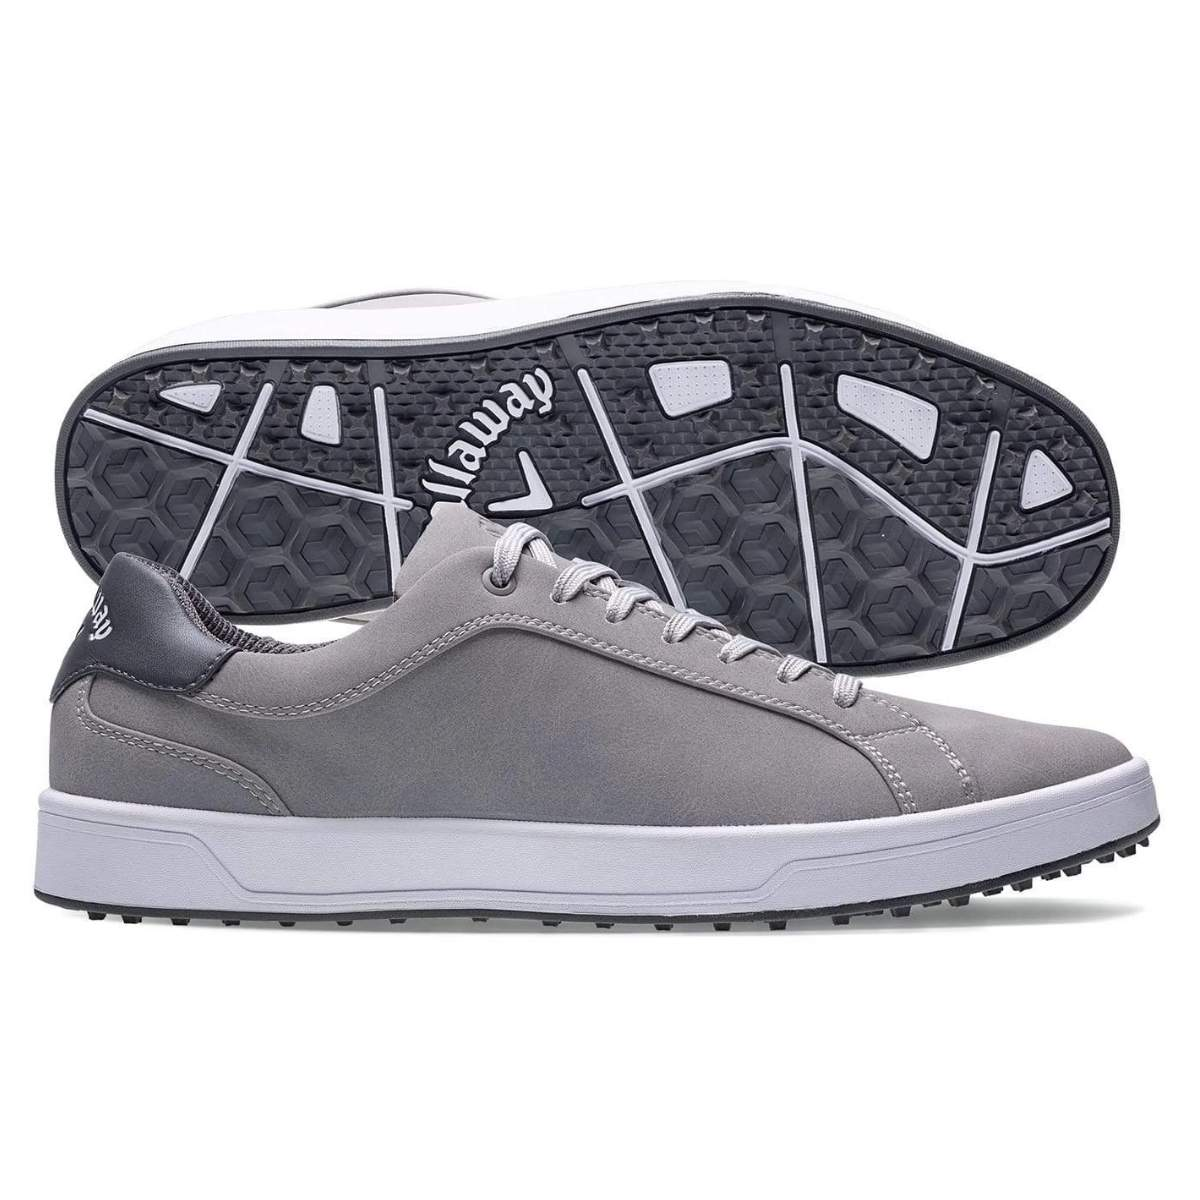 Callaway Men's Del Mar Grey Golf Shoes